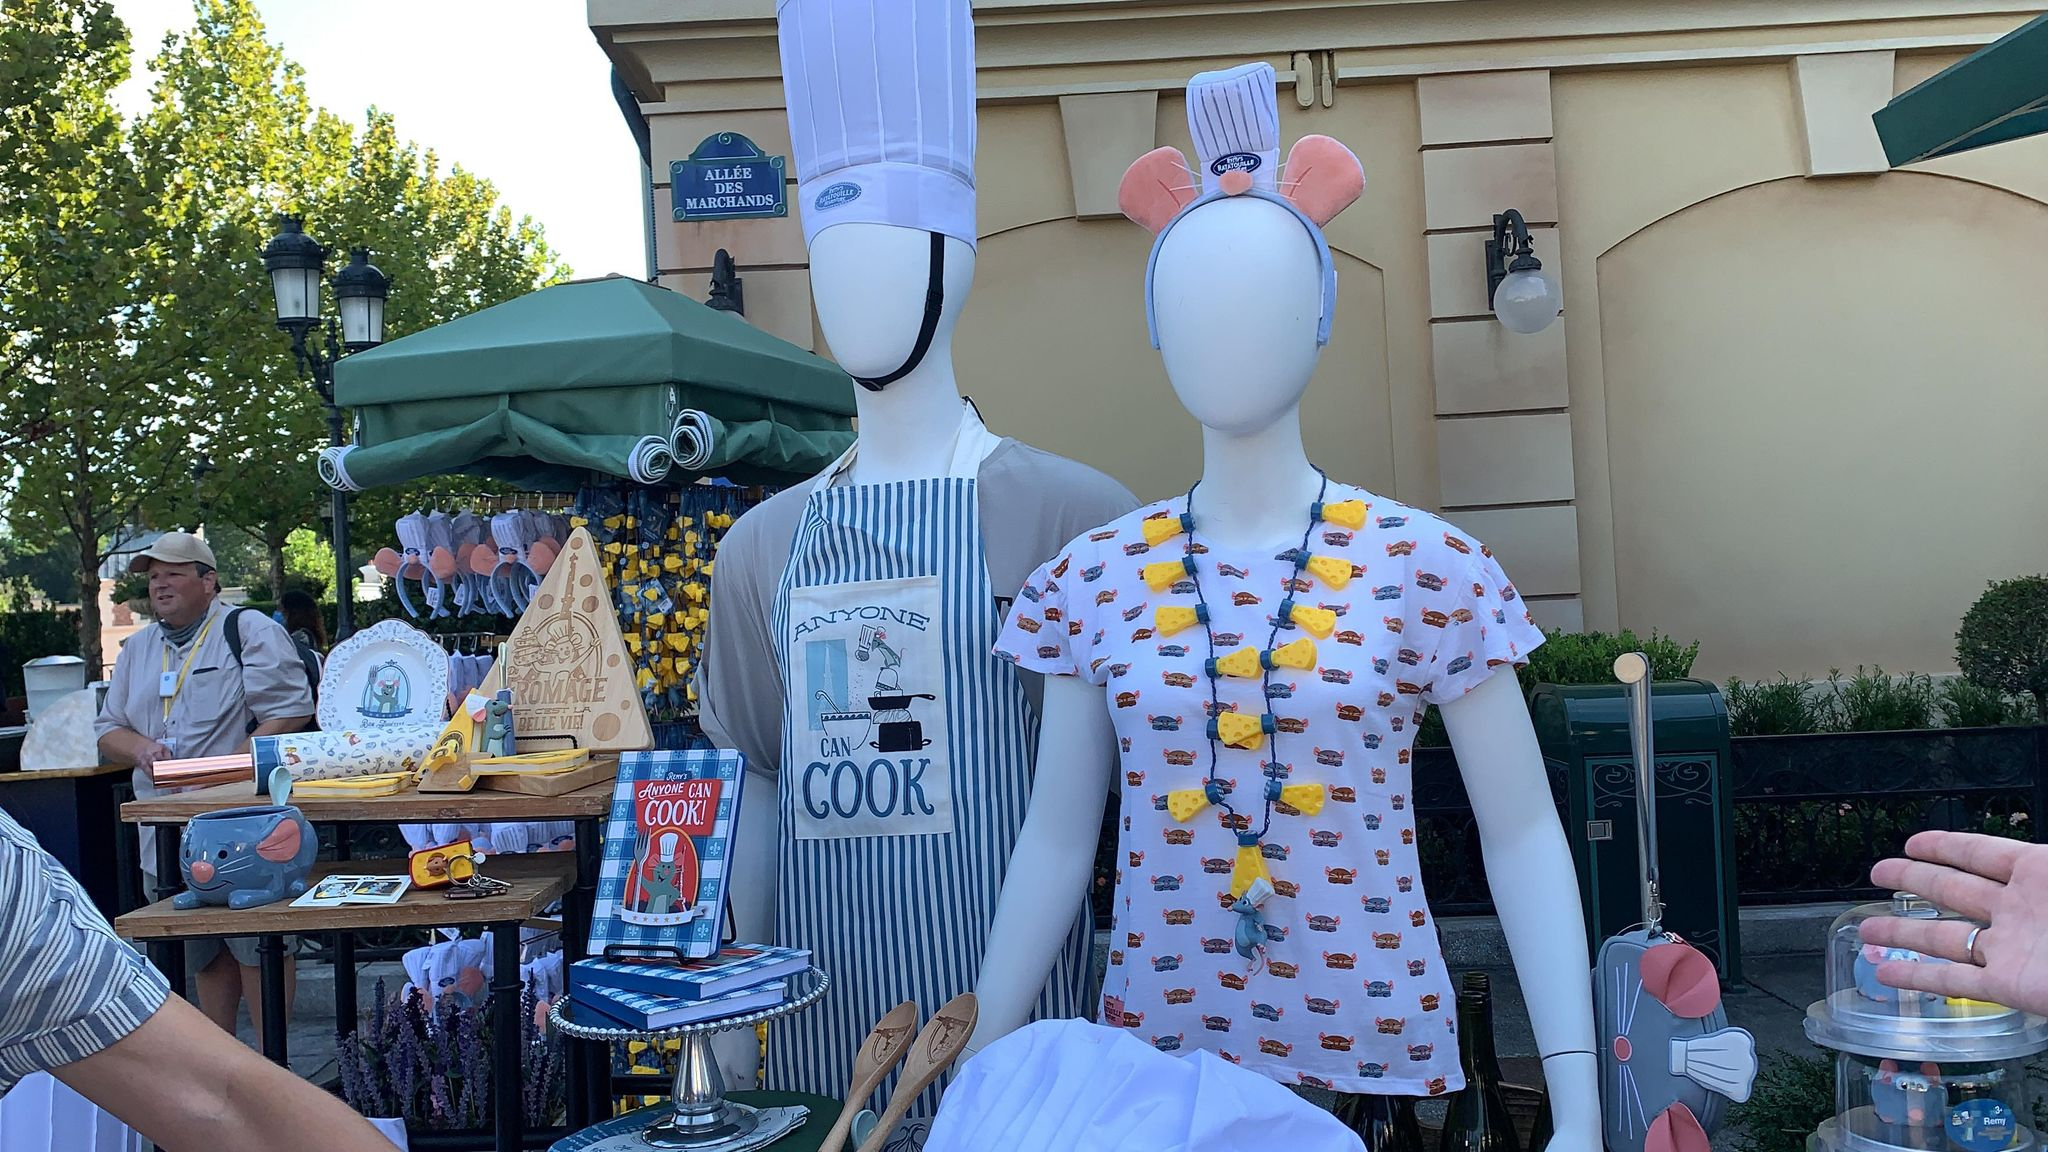 First look at the new Remy's Ratatouille Adventure line of merch coming soon! 3